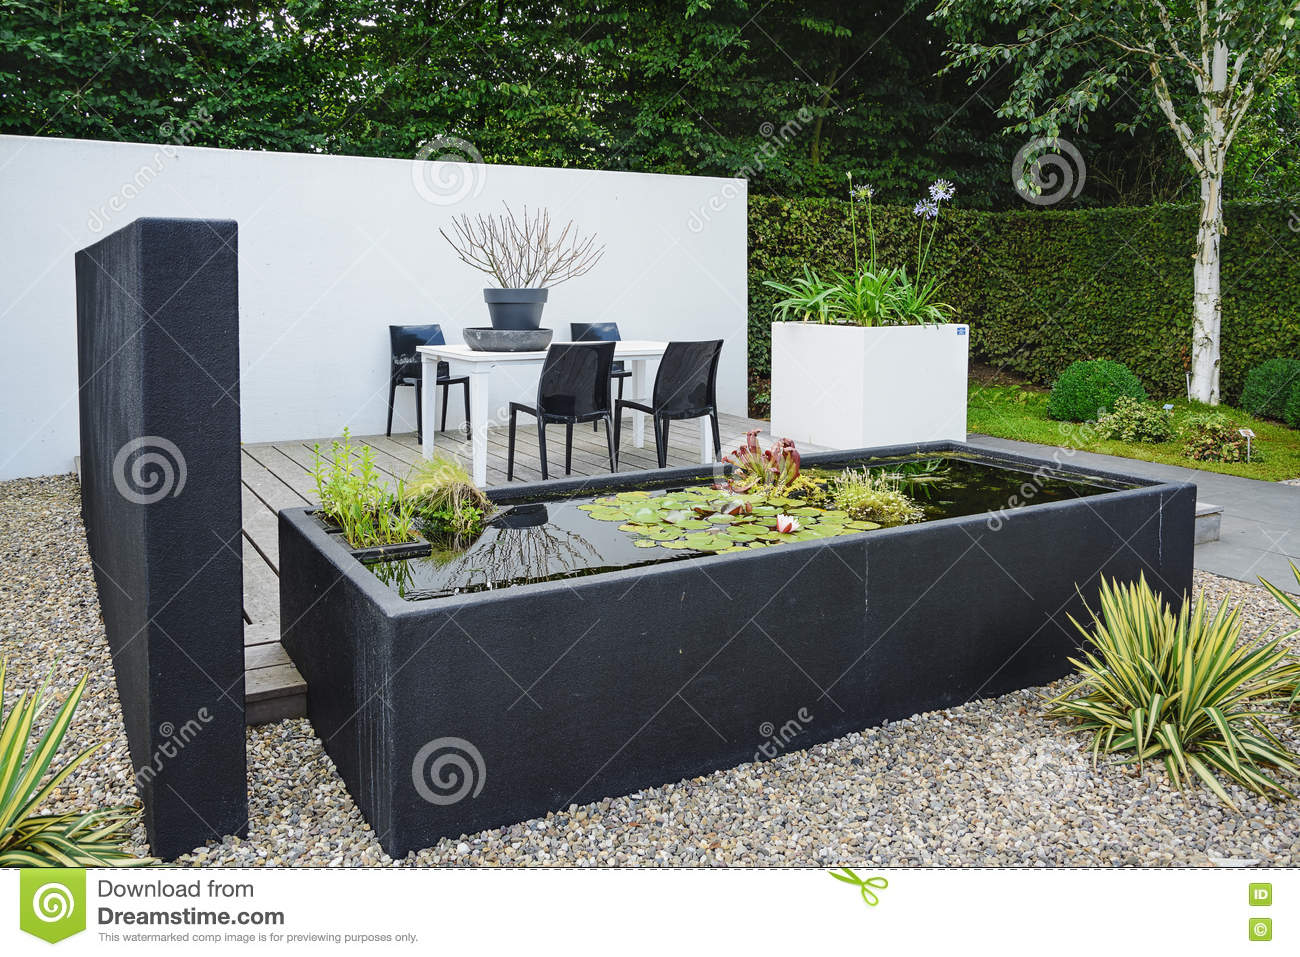 2015 the gardens of appeltern is the inspiration garden park in the netherlands in this picture a garden with modern garden furniture and trendy pond